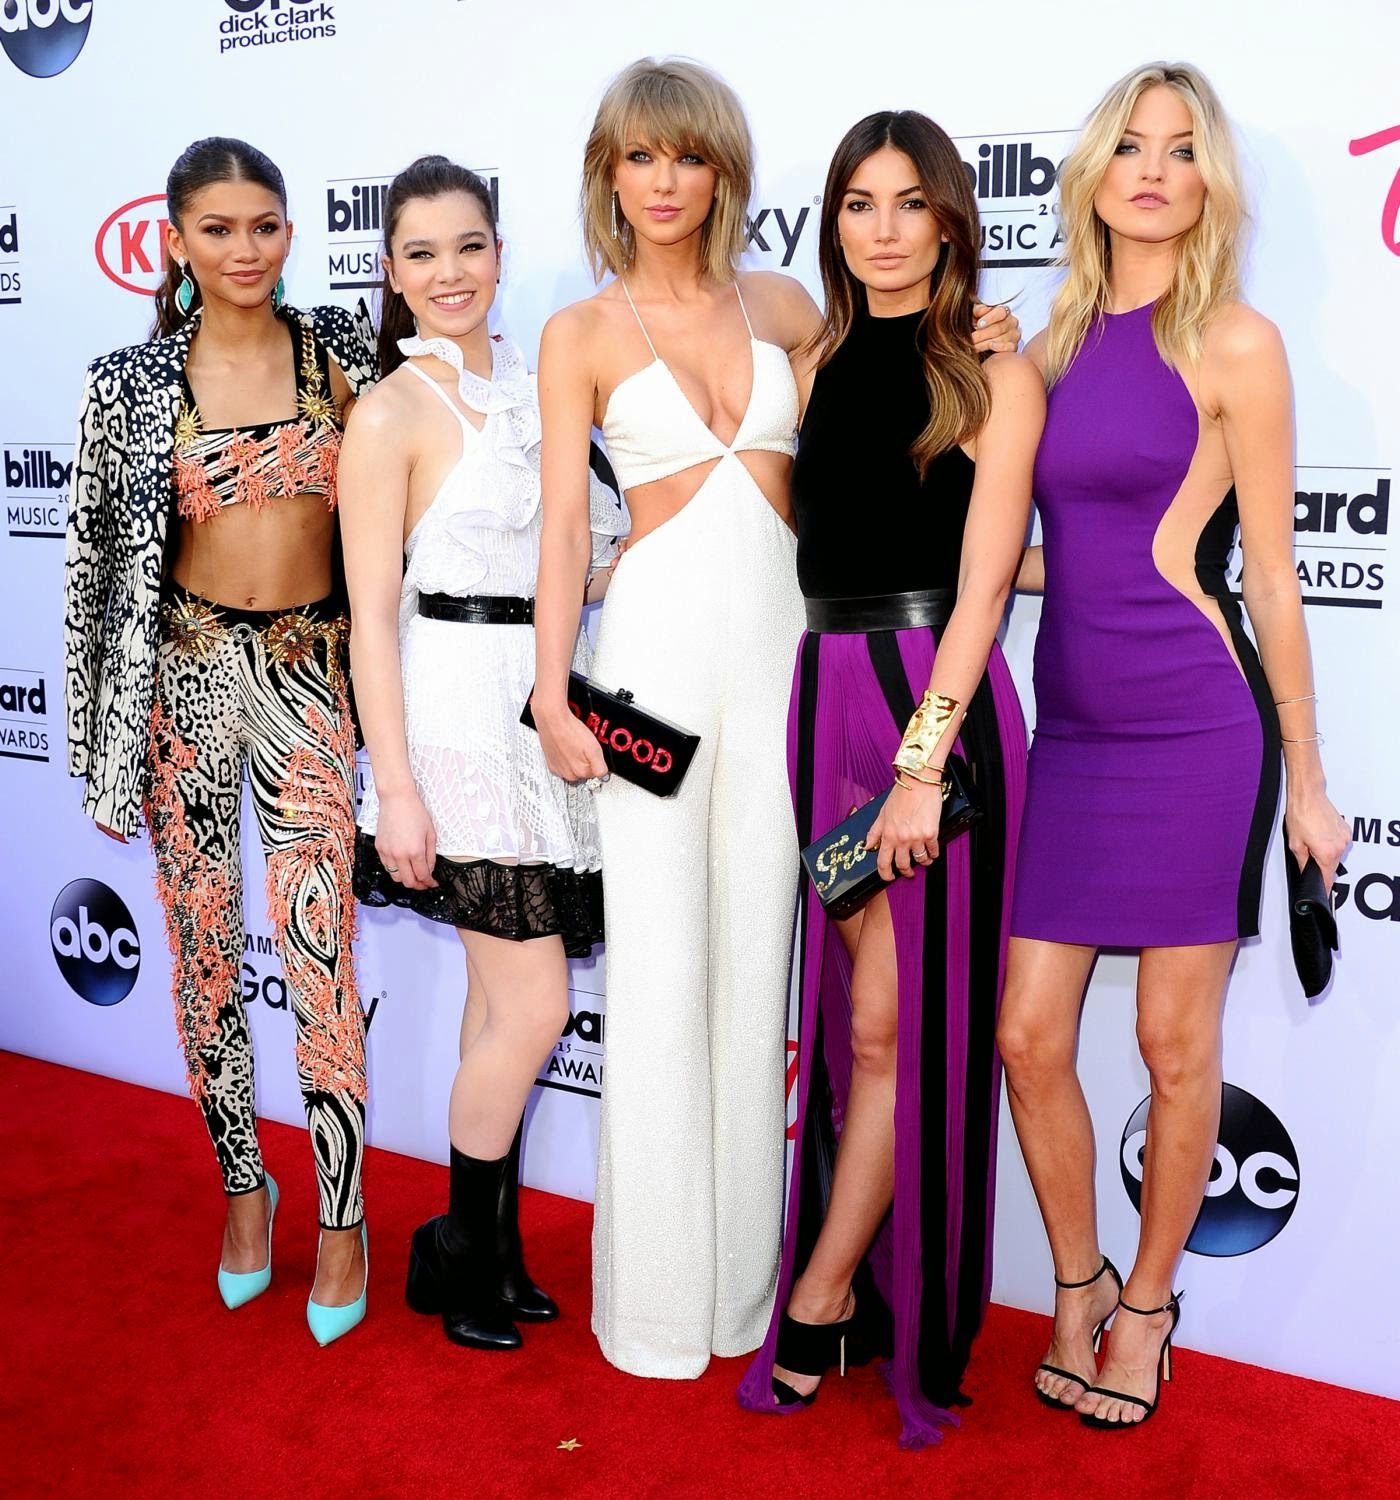 Zendaya Coleman, Taylor Swift, Lily Aldridge and Martha Hunt at 2015 Billboard Music Awards